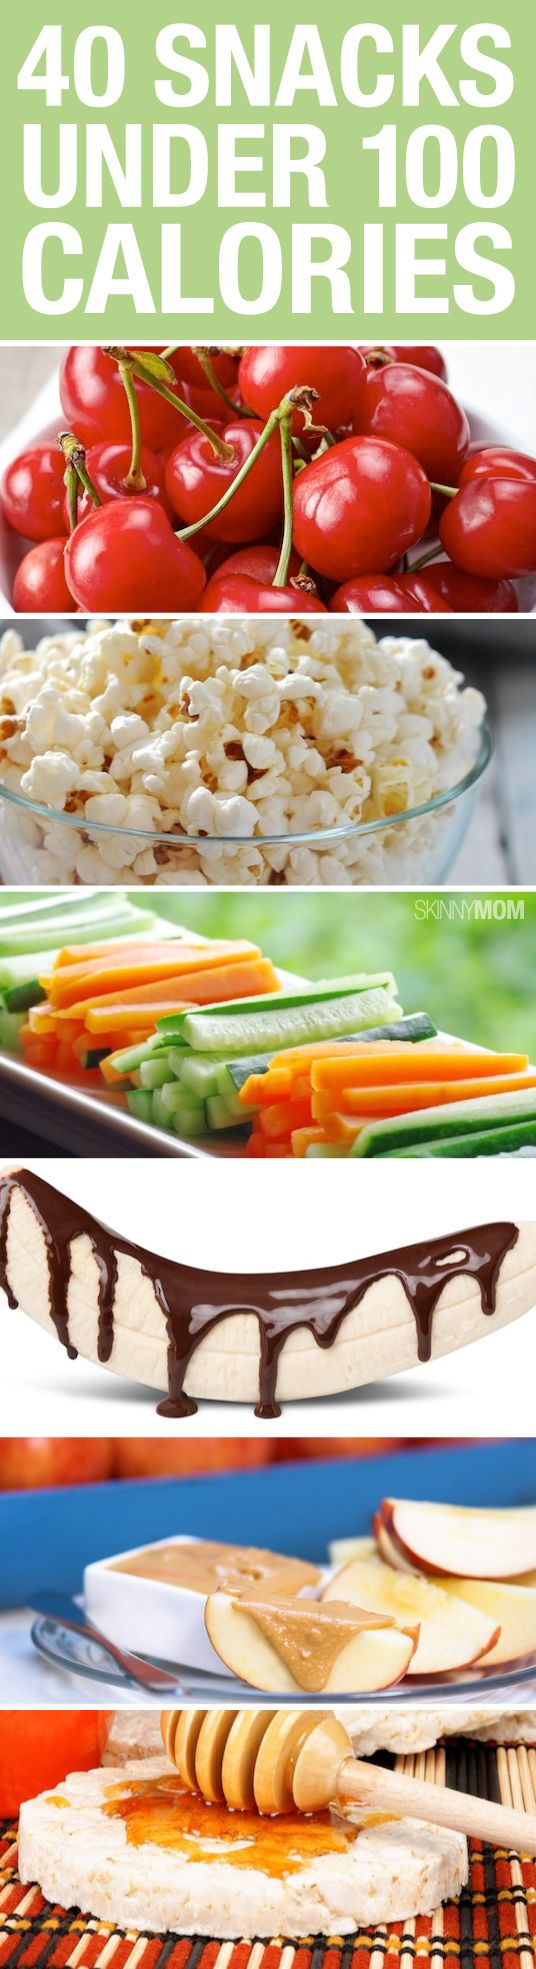 snack ideas for under 100 calories